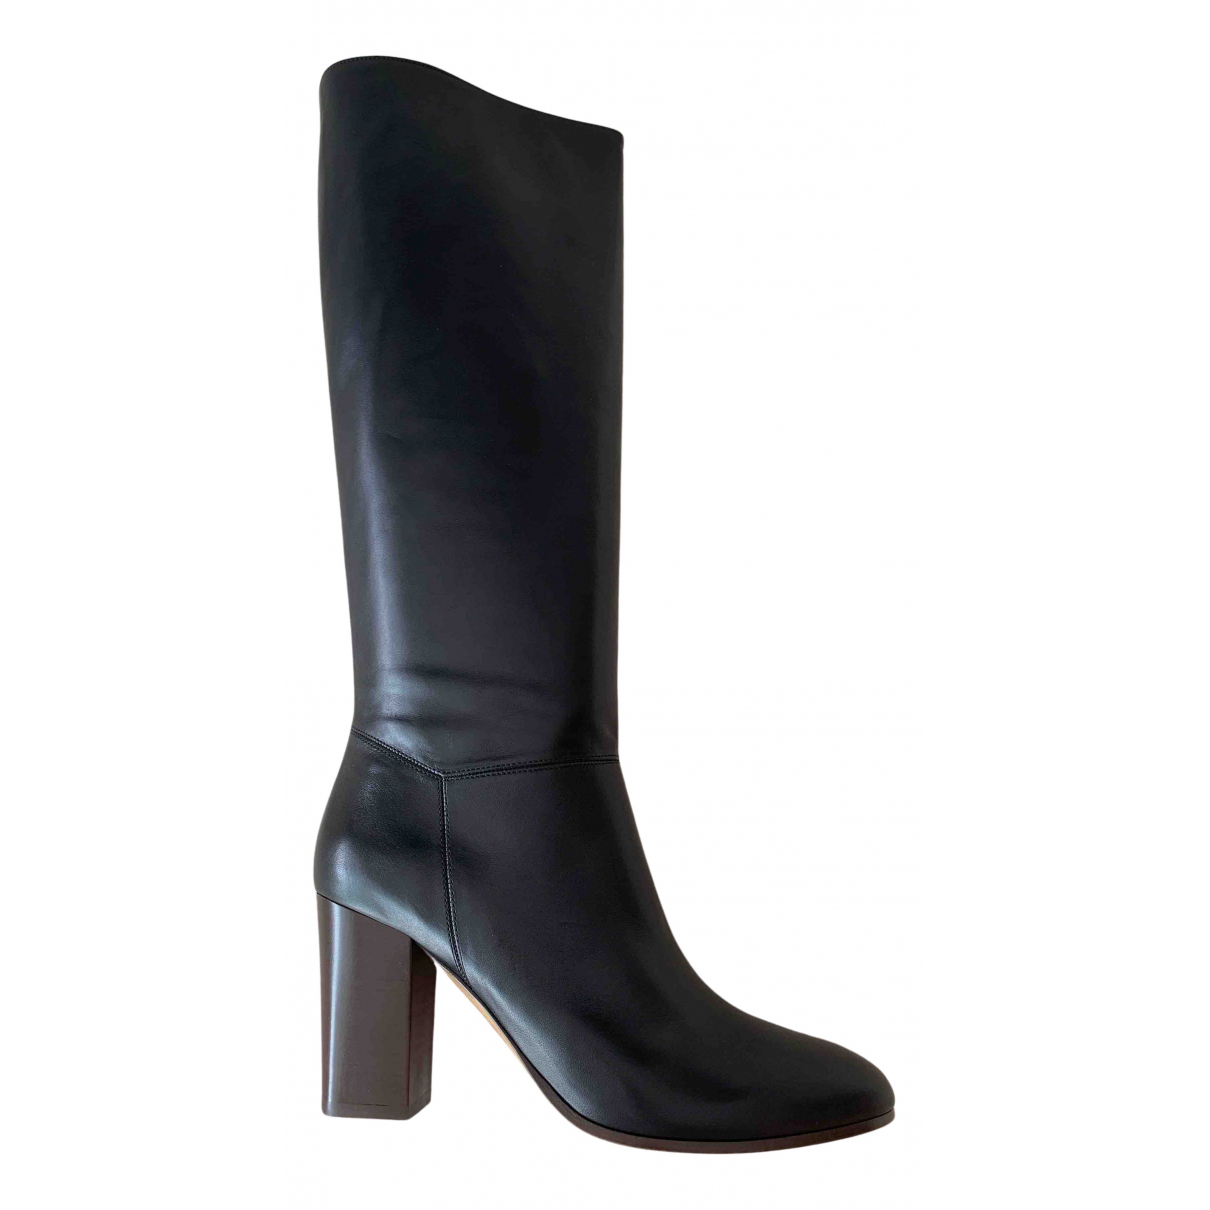 Maje N Black Leather Boots for Women 41 EU